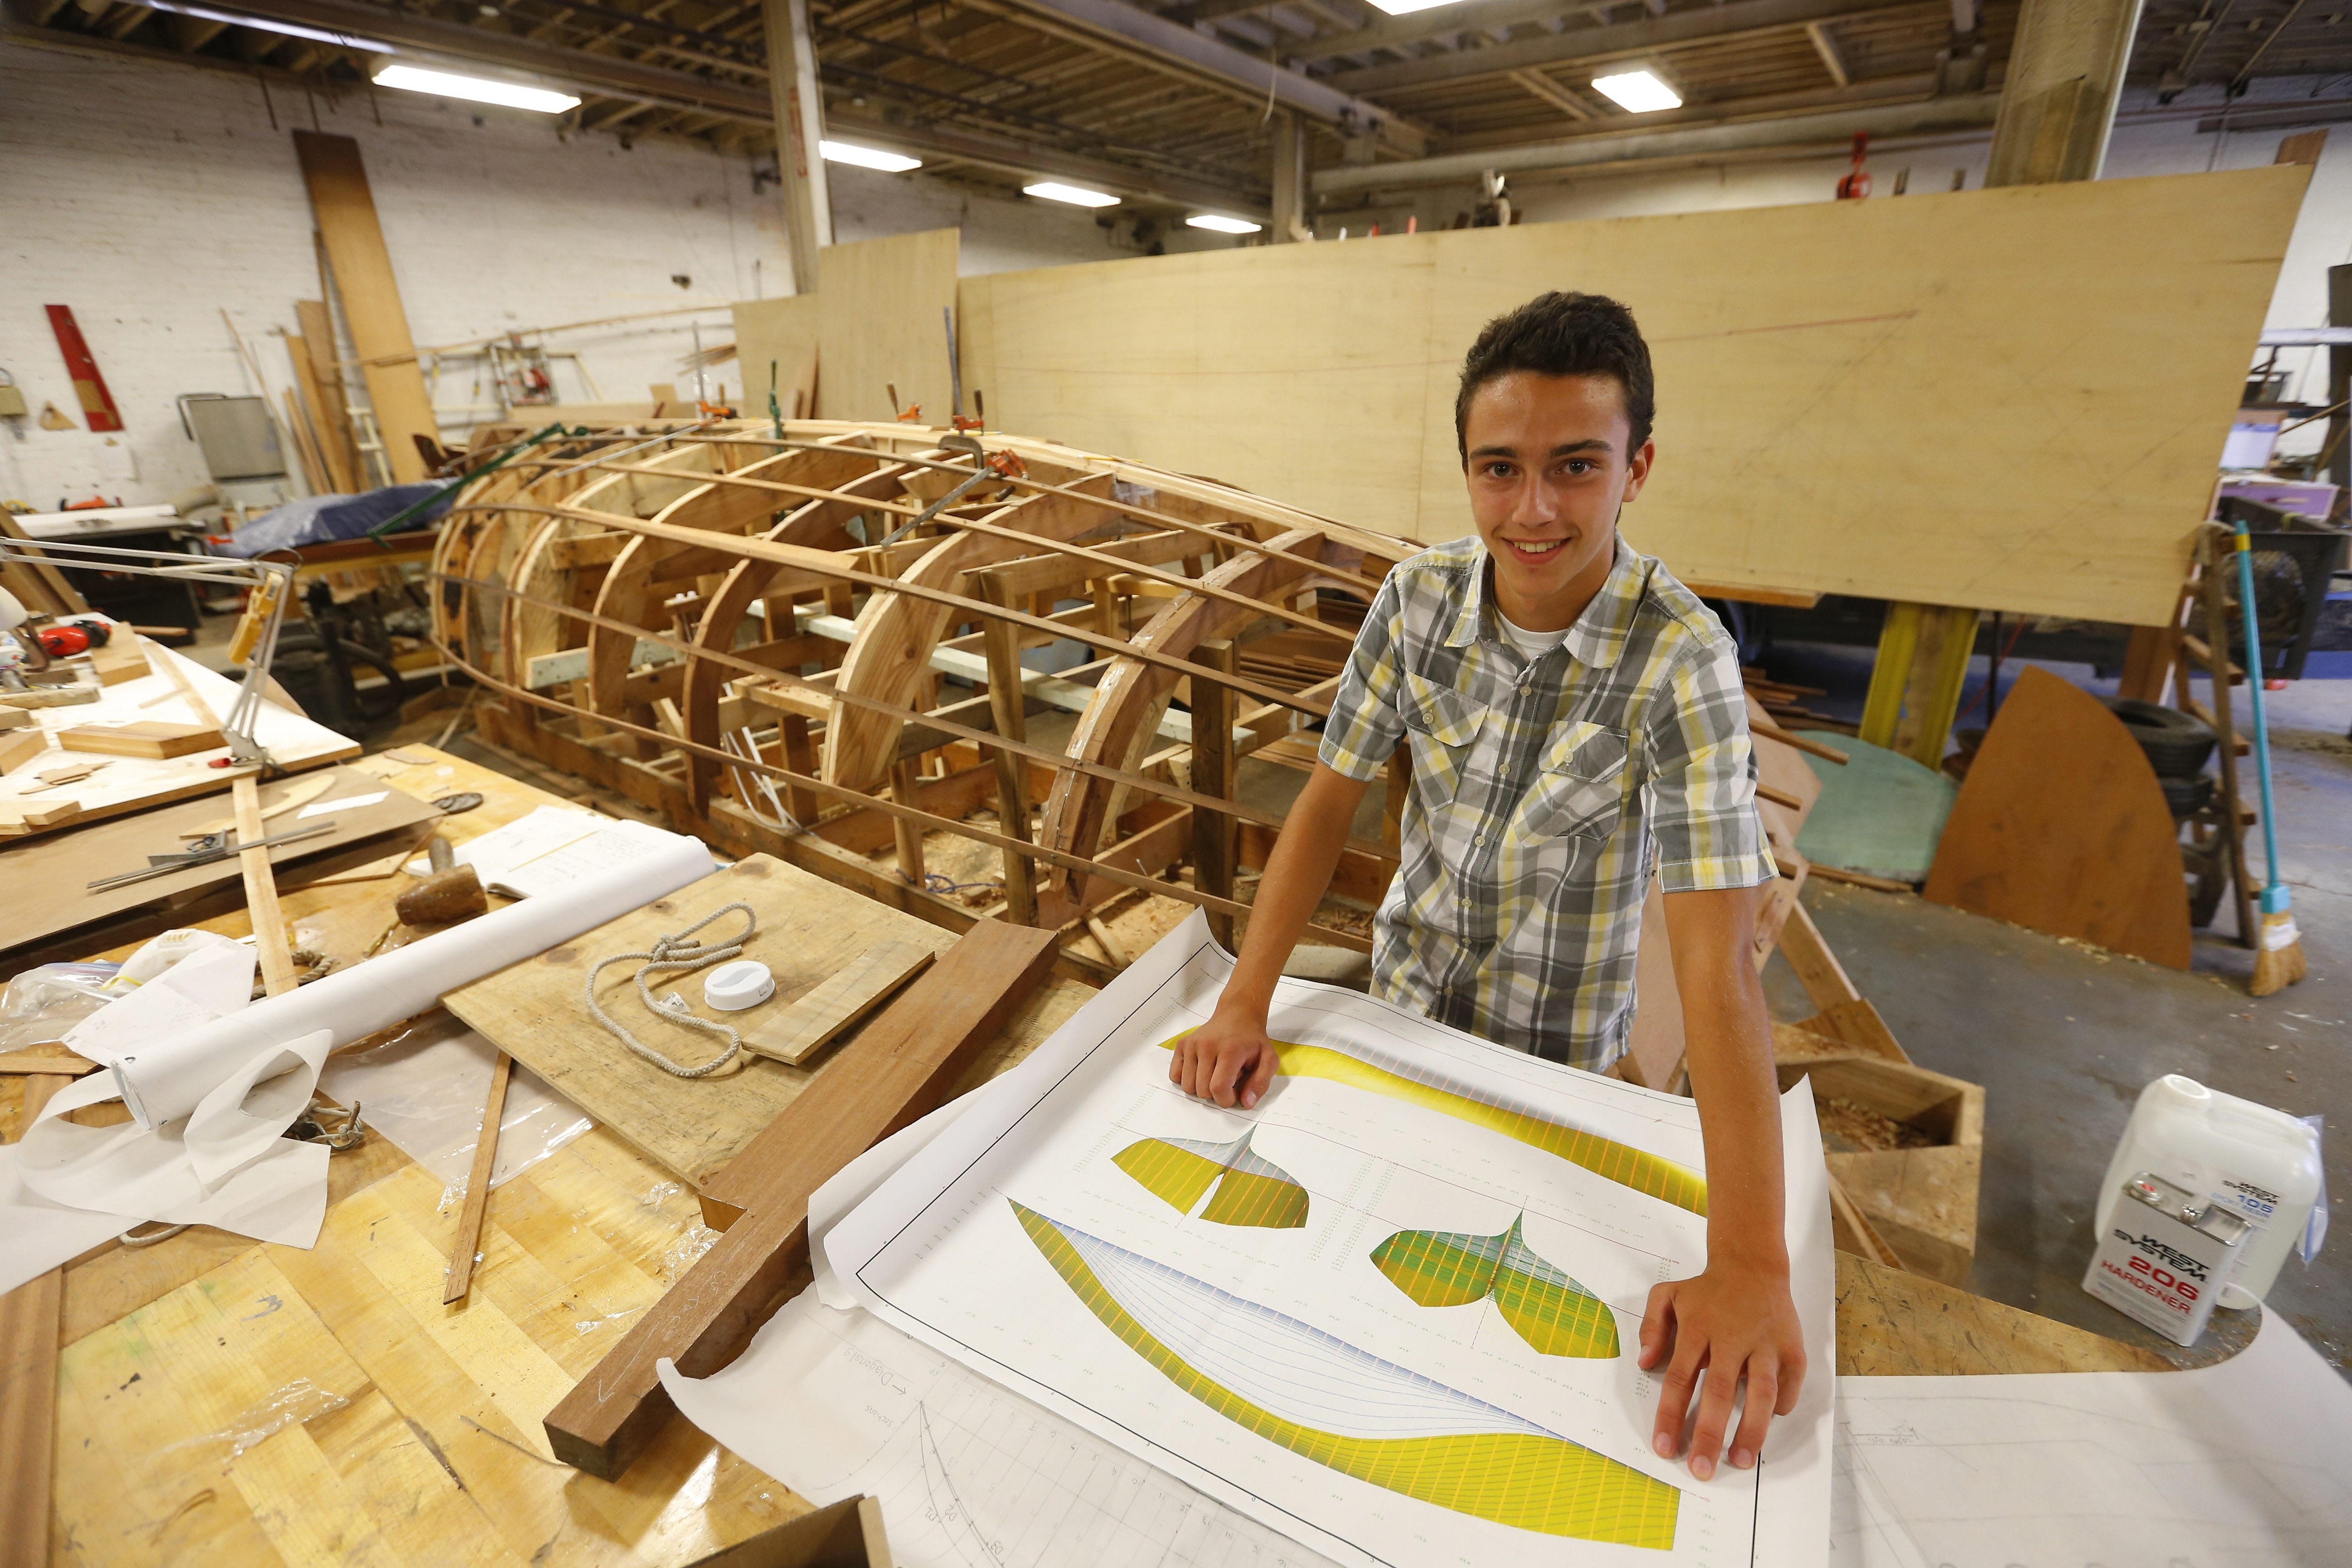 """Owen Mylotte stands with some of the plans he has for the ship he wants to build at the Buffalo Maritime Center.  """"The feeling of sailing got to me,"""" said Owen, who fell in love with sailboats after riding on the Spirit of Buffalo."""